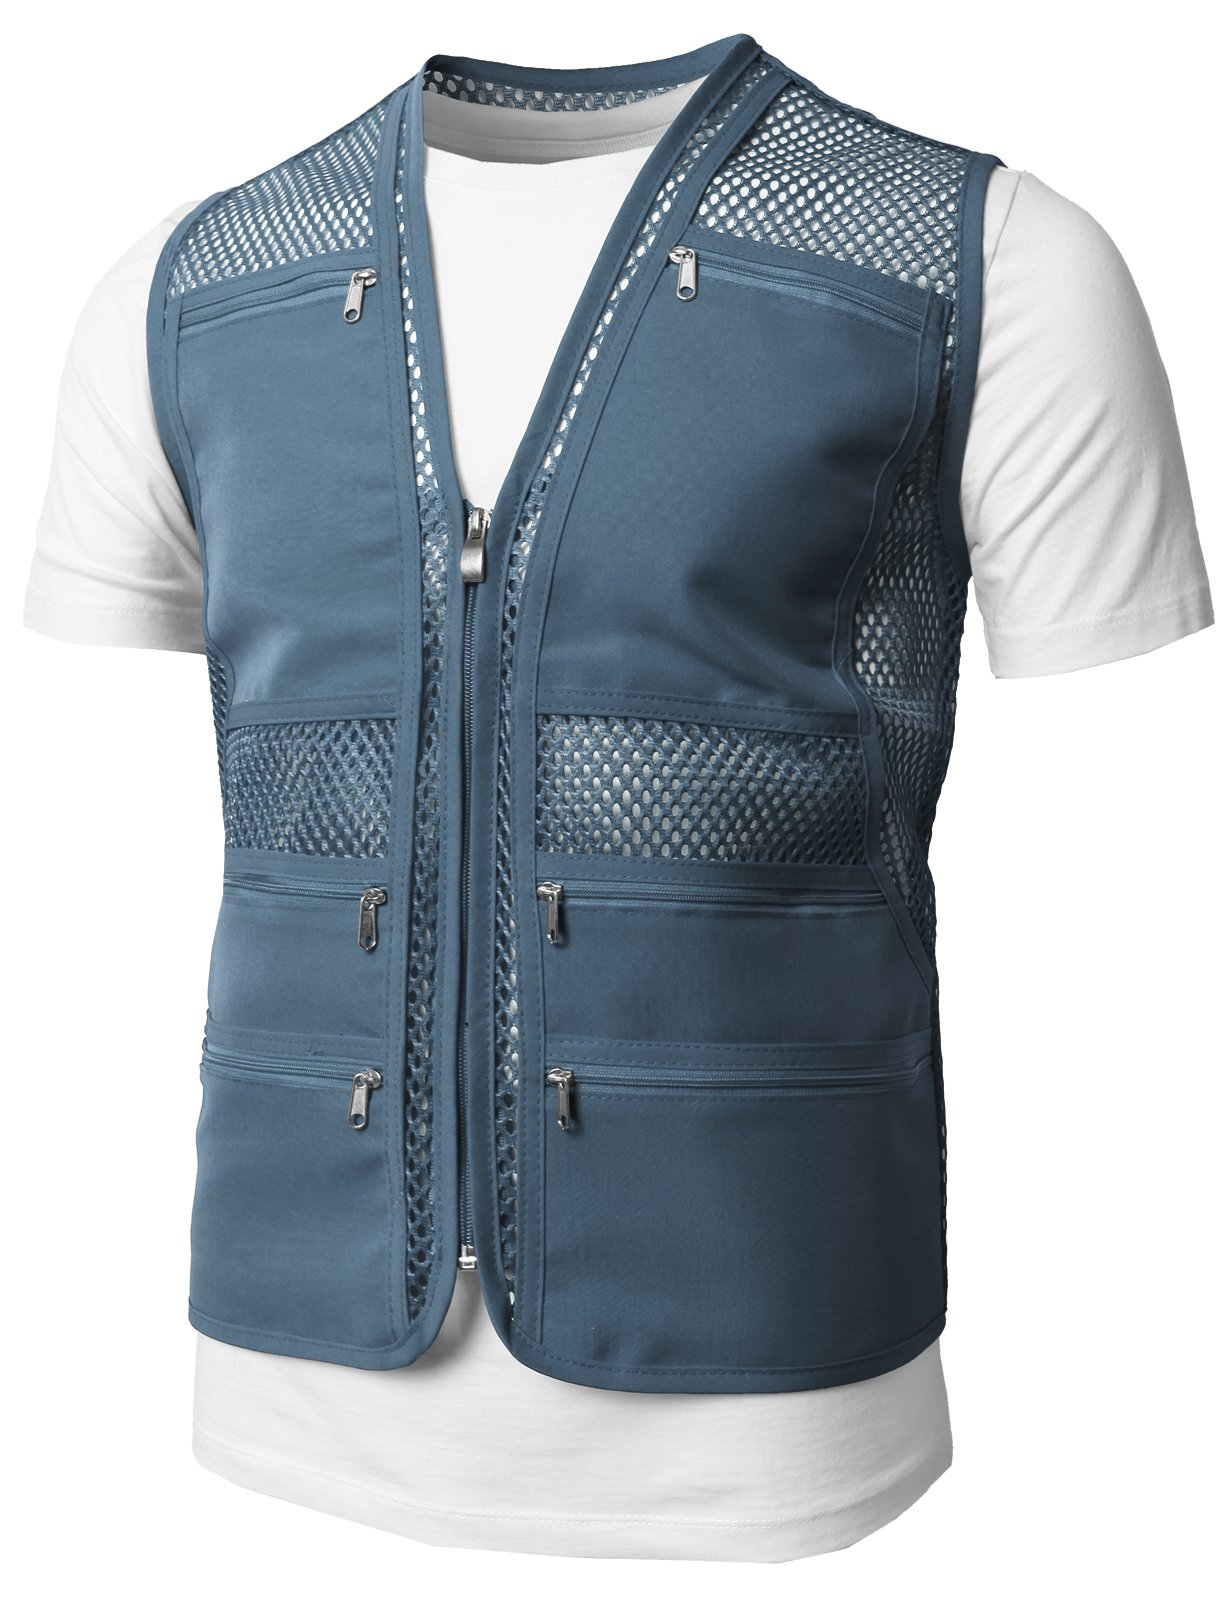 H2H Mens Casual Work Utility Hunting Travels Sports Mesh Vest With Pockets Blue US M/Asia L (KMOV086)